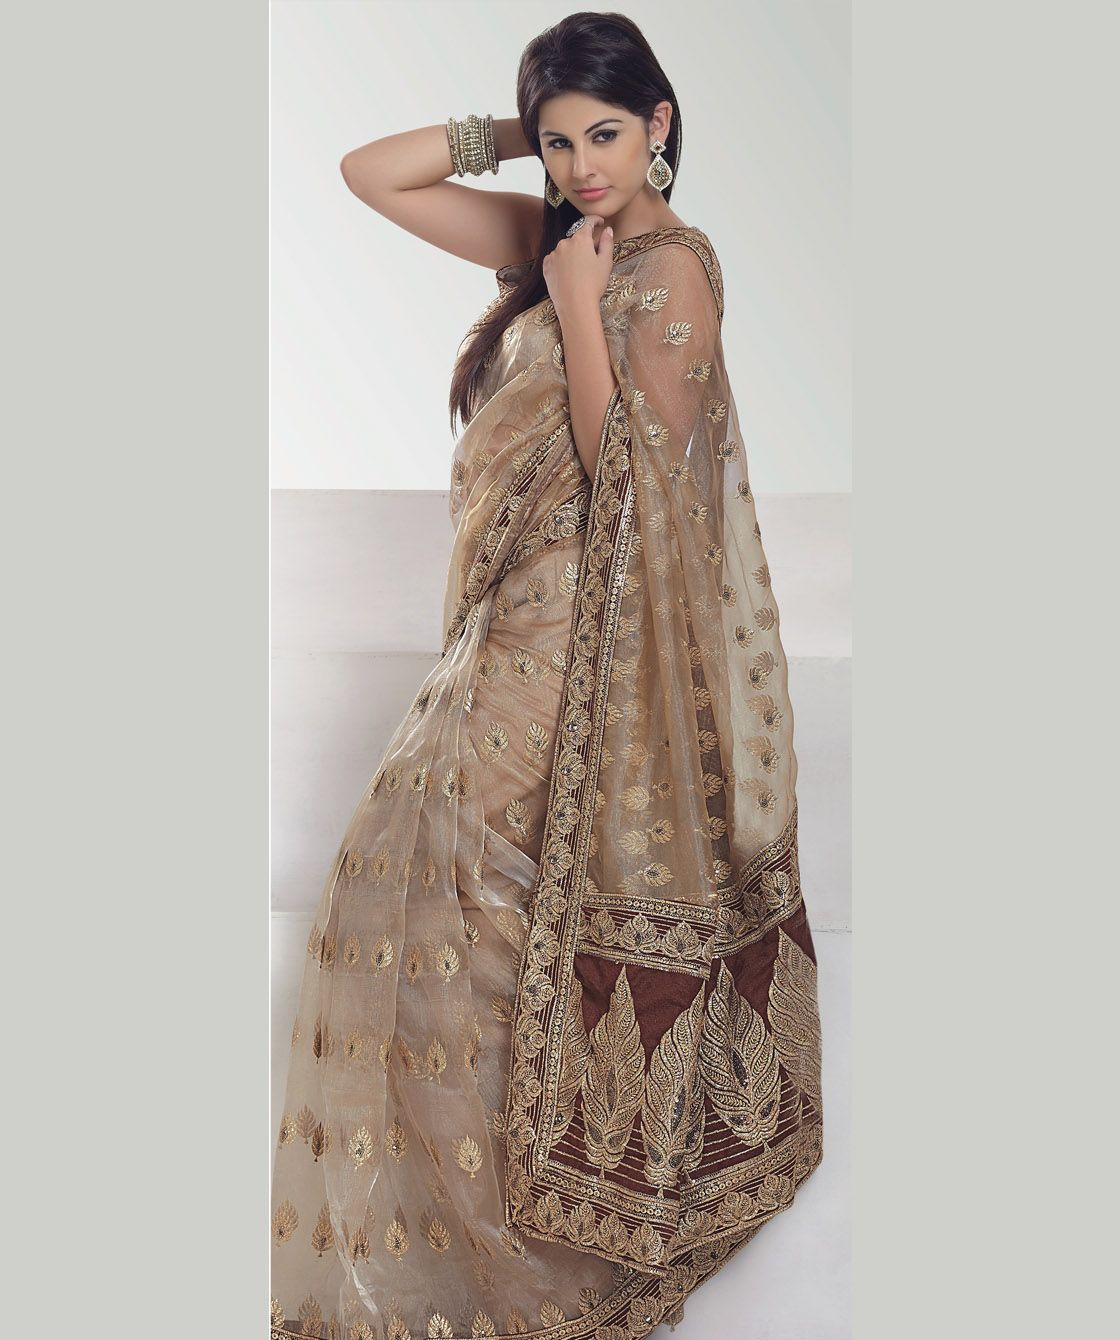 Zari and sequin work light brown brown colored net saree indian